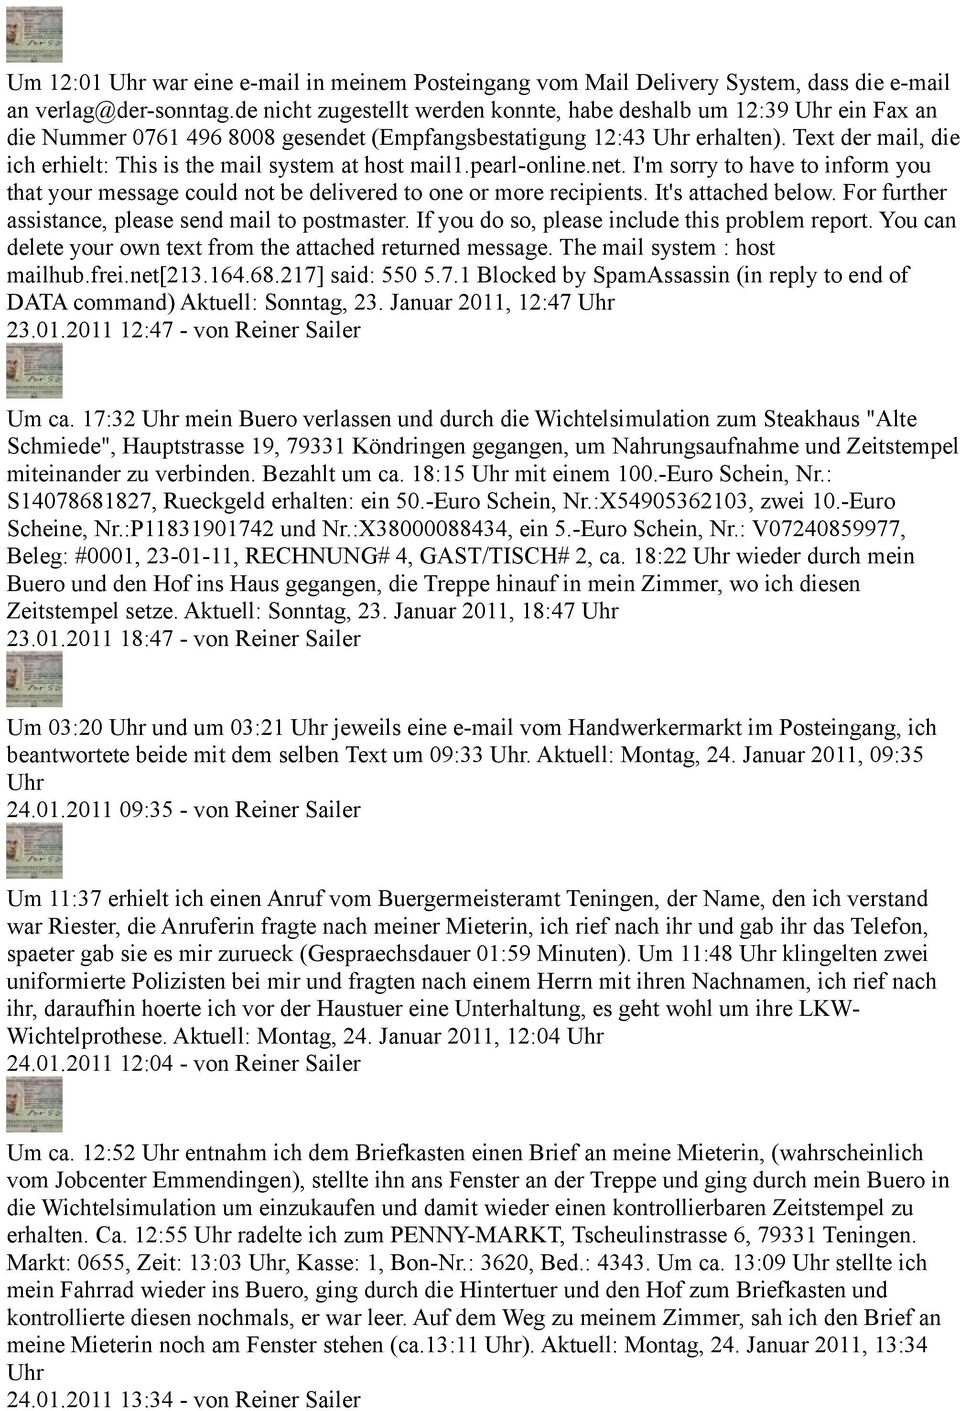 Text der mail, die ich erhielt: This is the mail system at host mail1.pearl-online.net. I'm sorry to have to inform you that your message could not be delivered to one or more recipients.